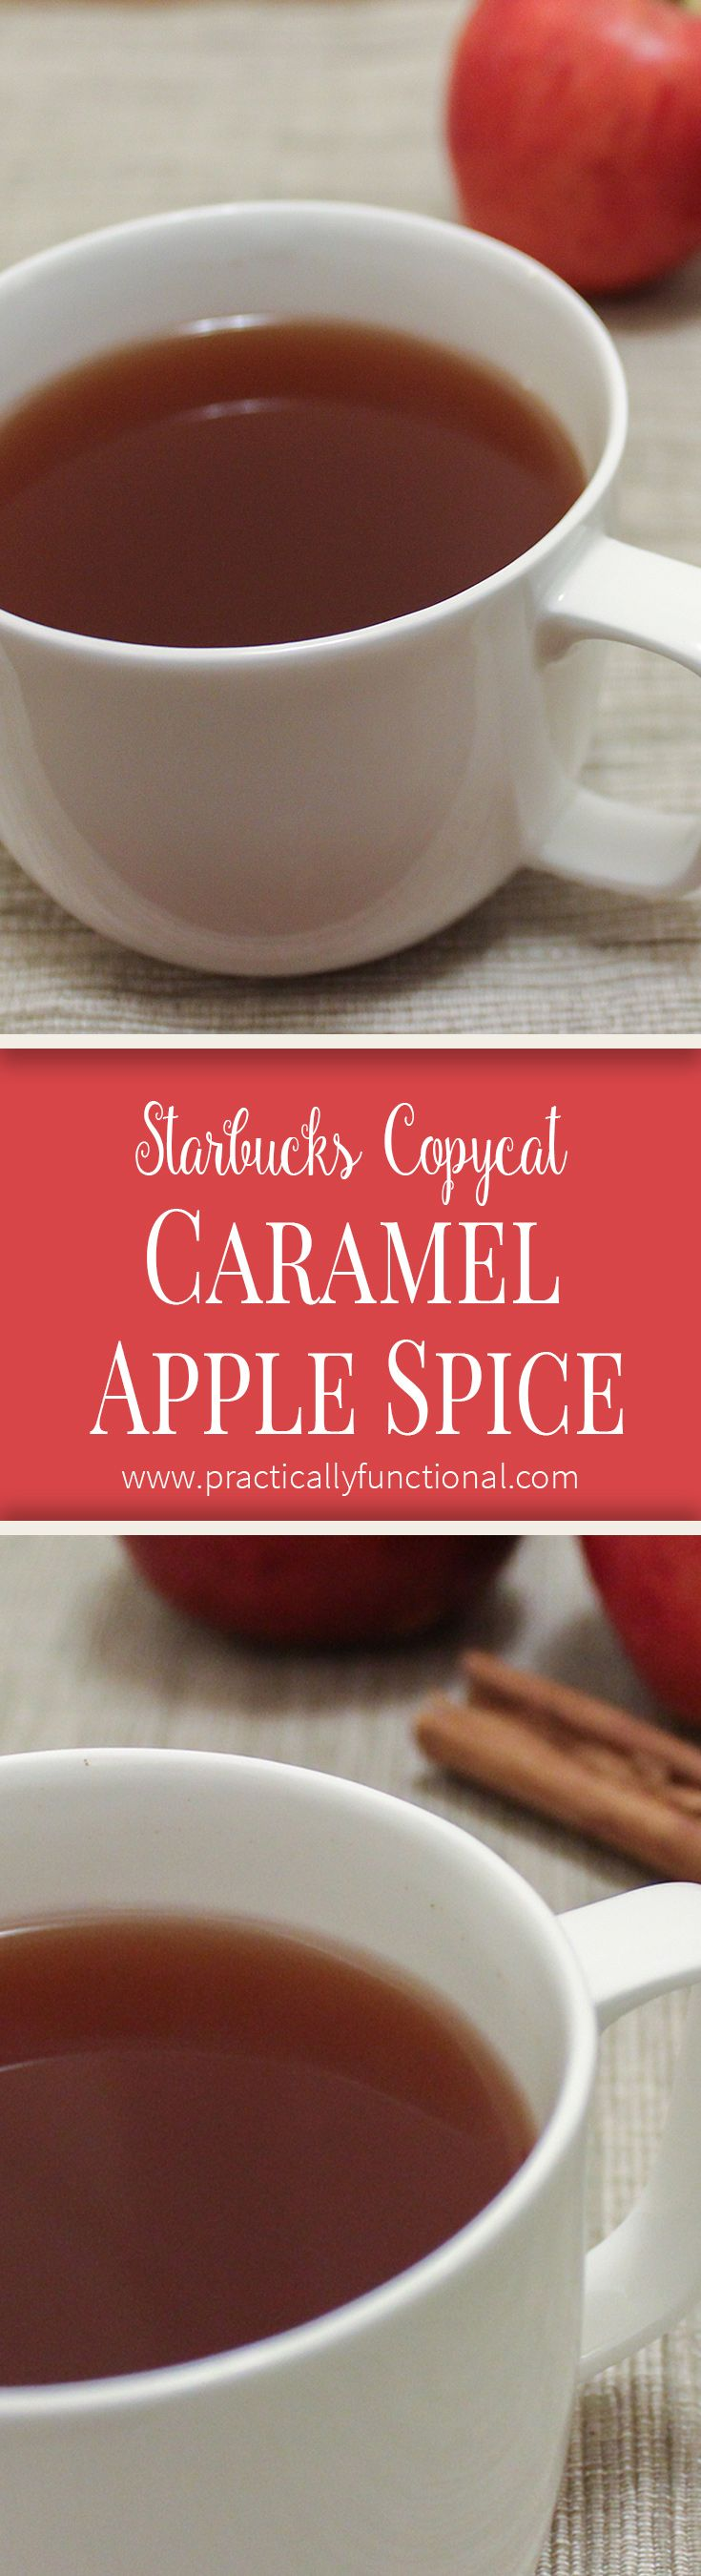 Make your own Starbucks copycat Caramel Apple Spice at home in your slow cooker! Perfect fall drink, and so easy to make! practicallyfunctional.com